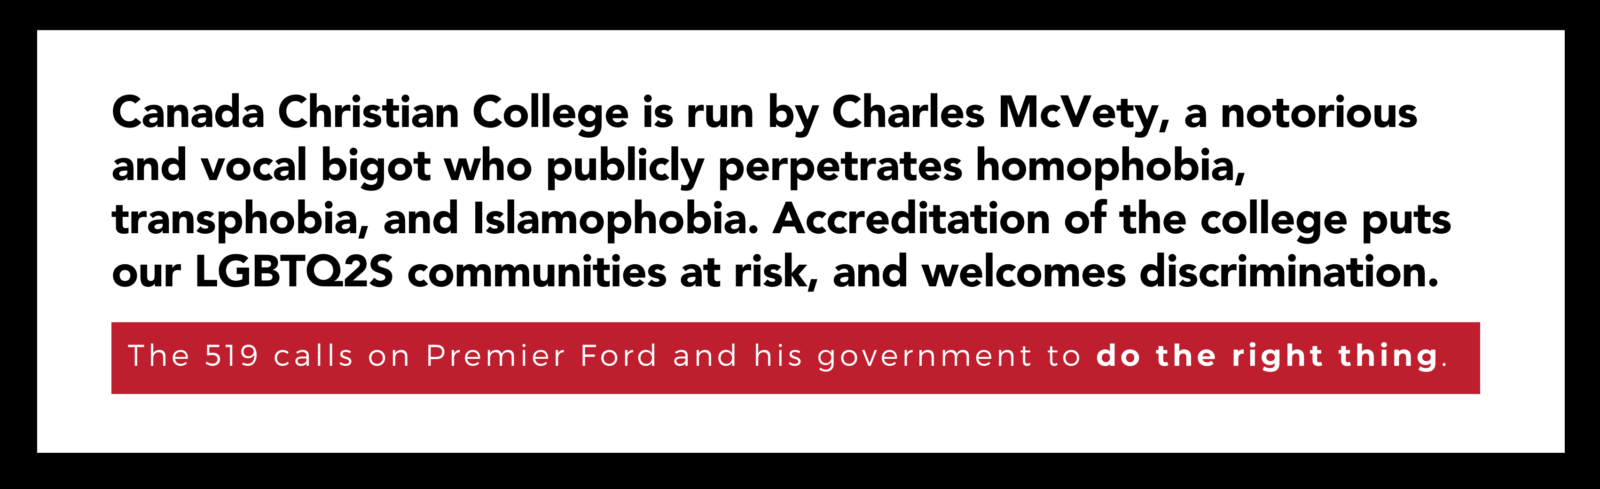 The accreditation of Canada Christian College puts our LGBTQ2S communities at risk.